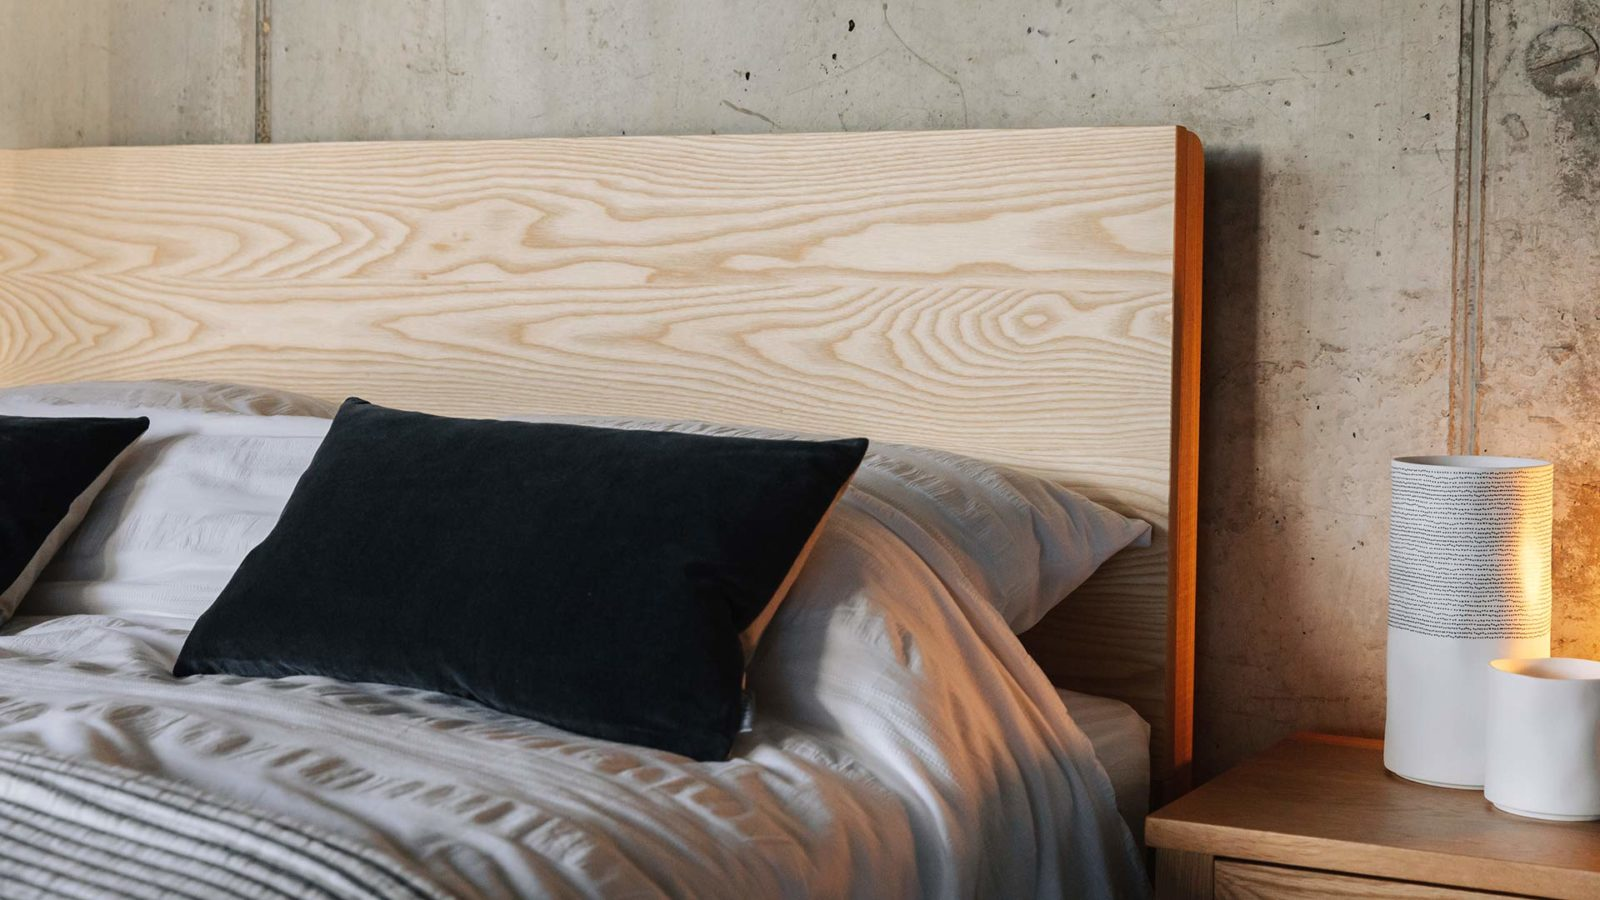 A closer look at the Bamford wooden bed solid Ash headboard